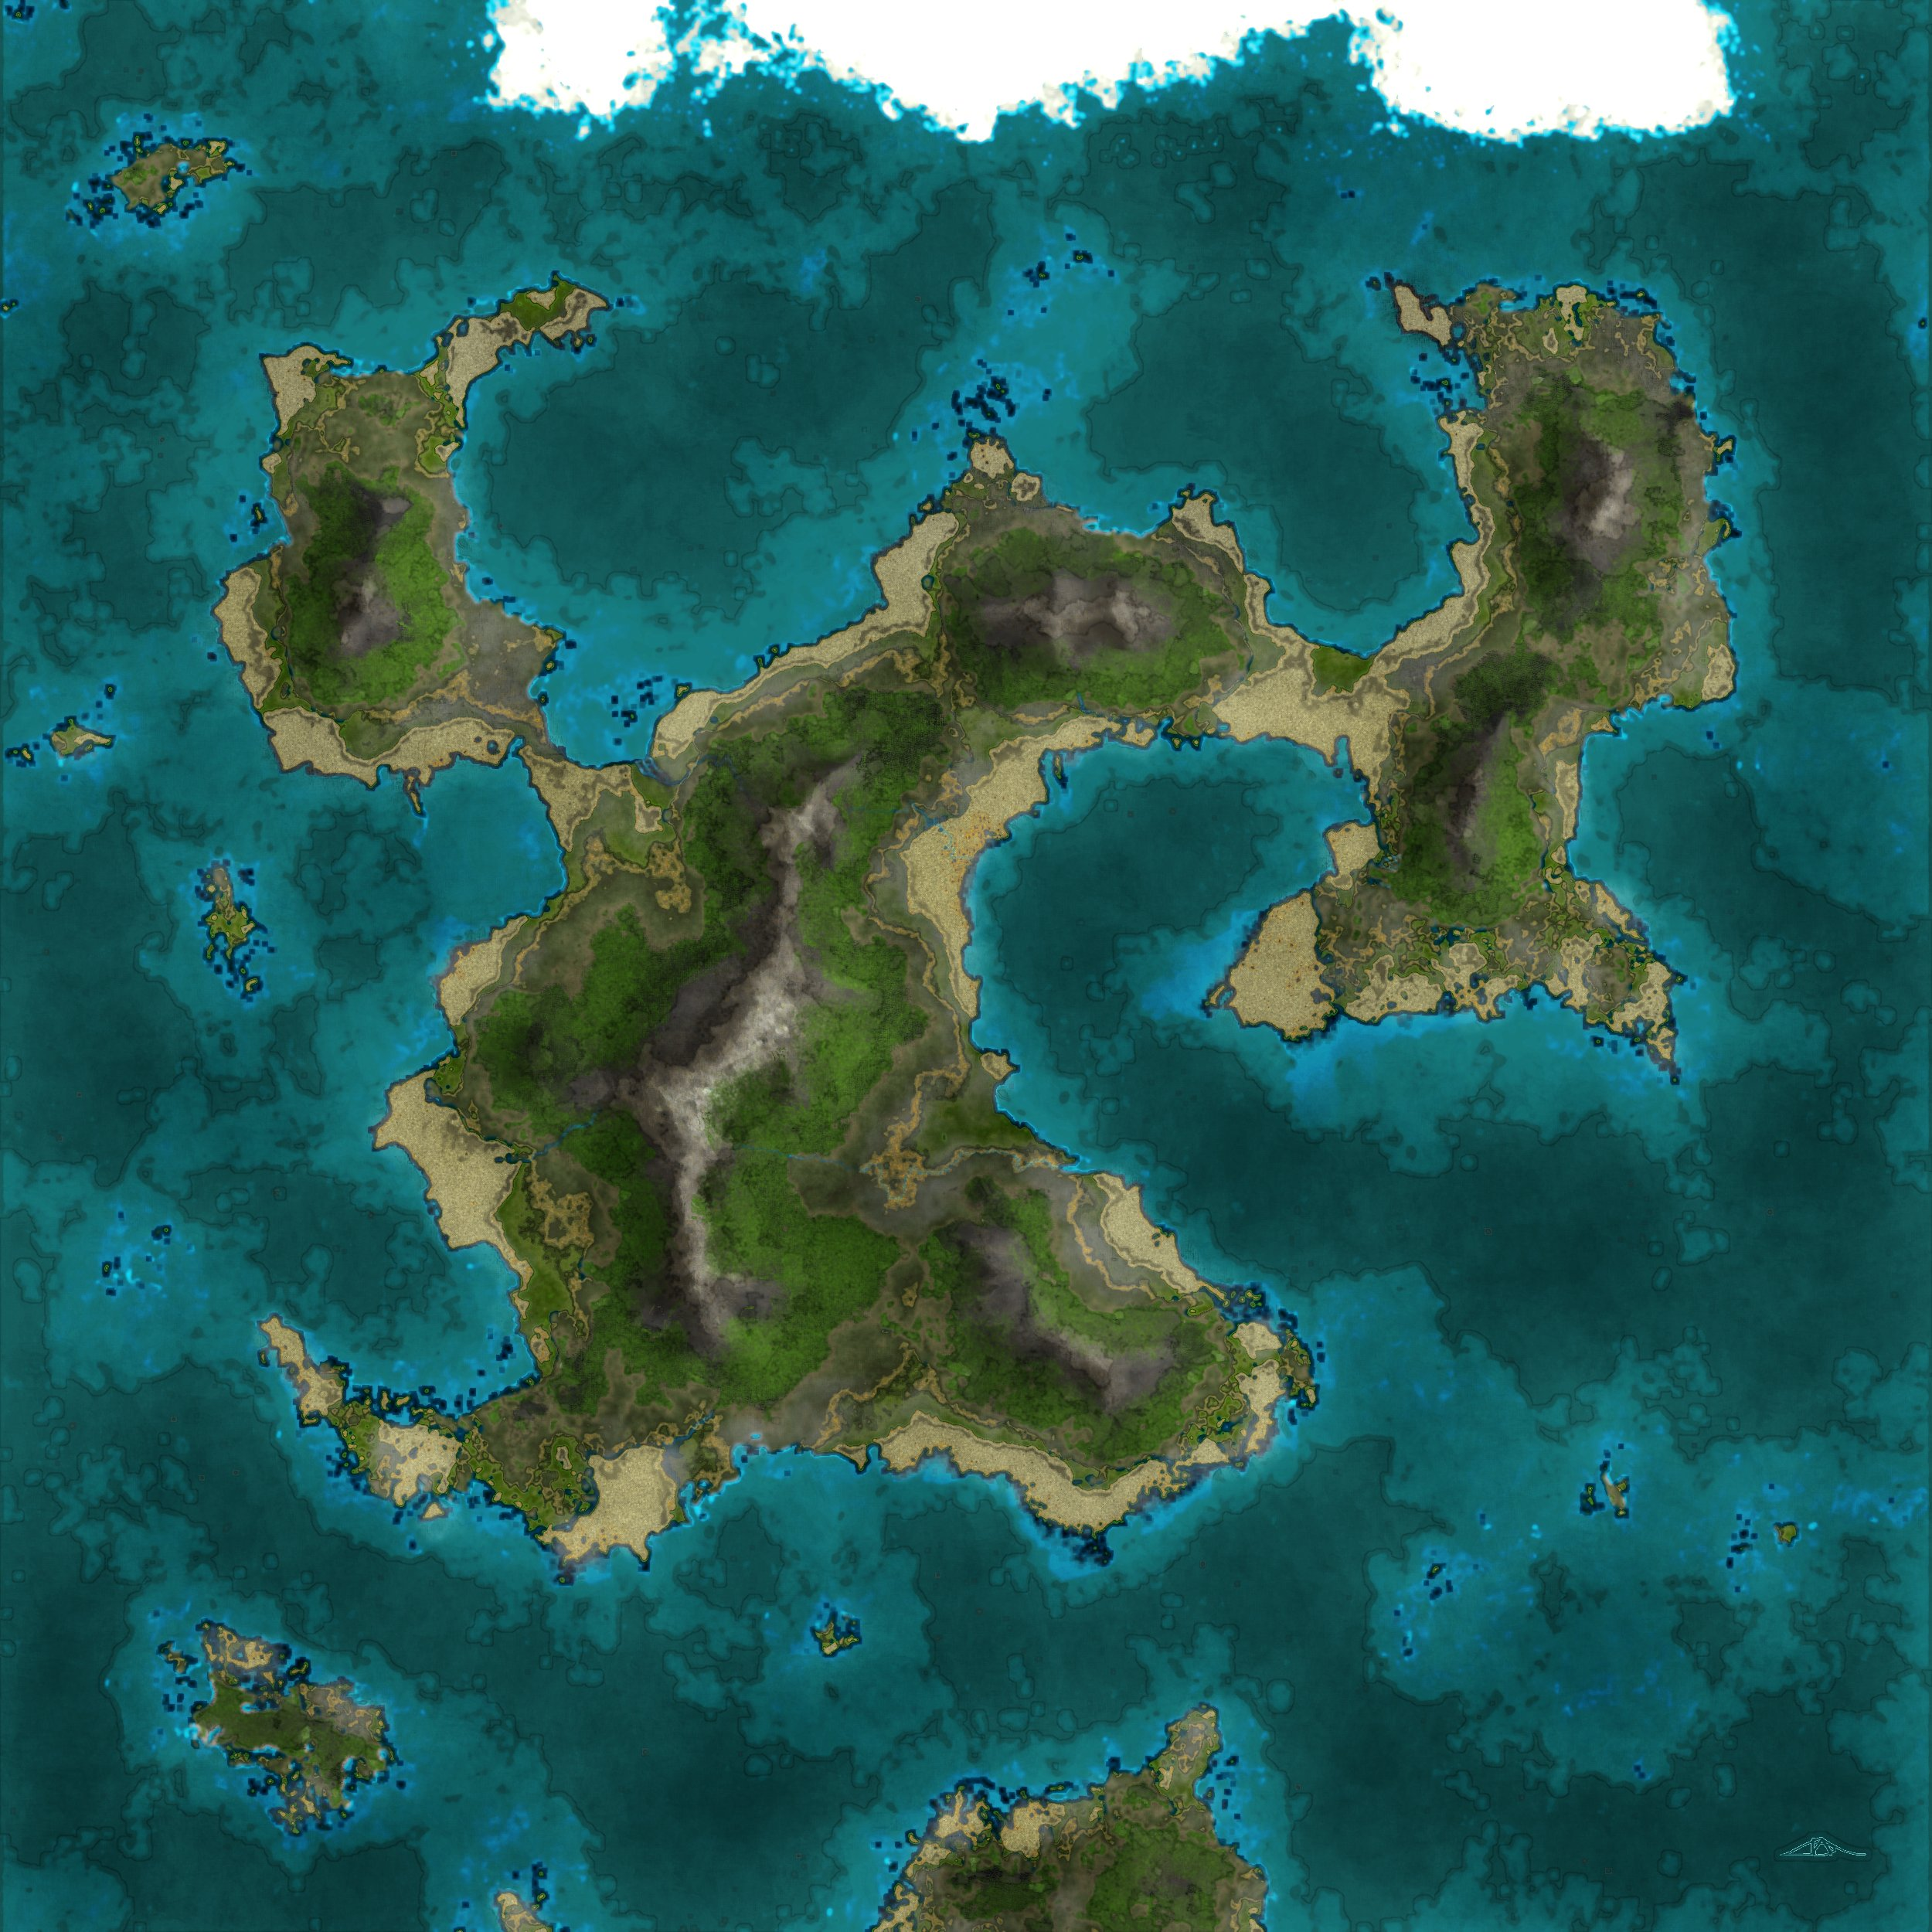 Grunge Islands - A style test